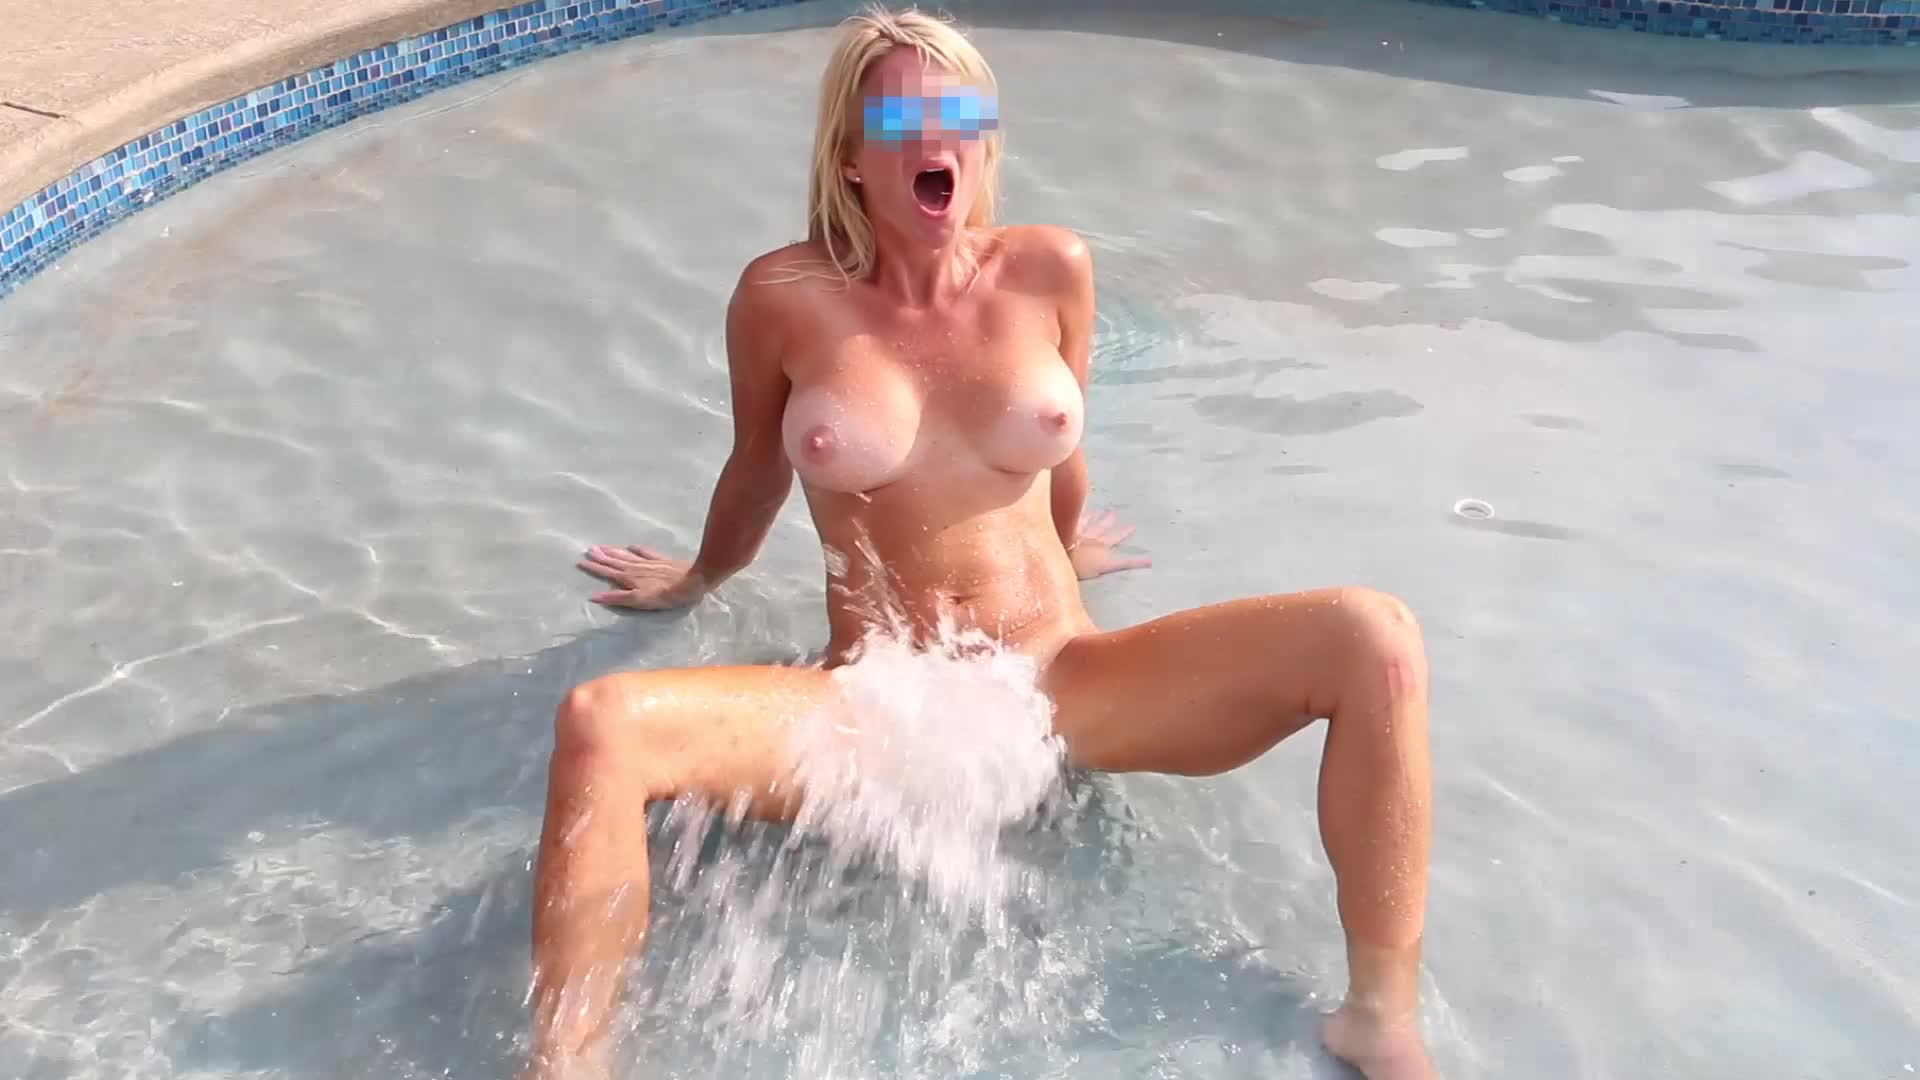 Male pool jet masturbation